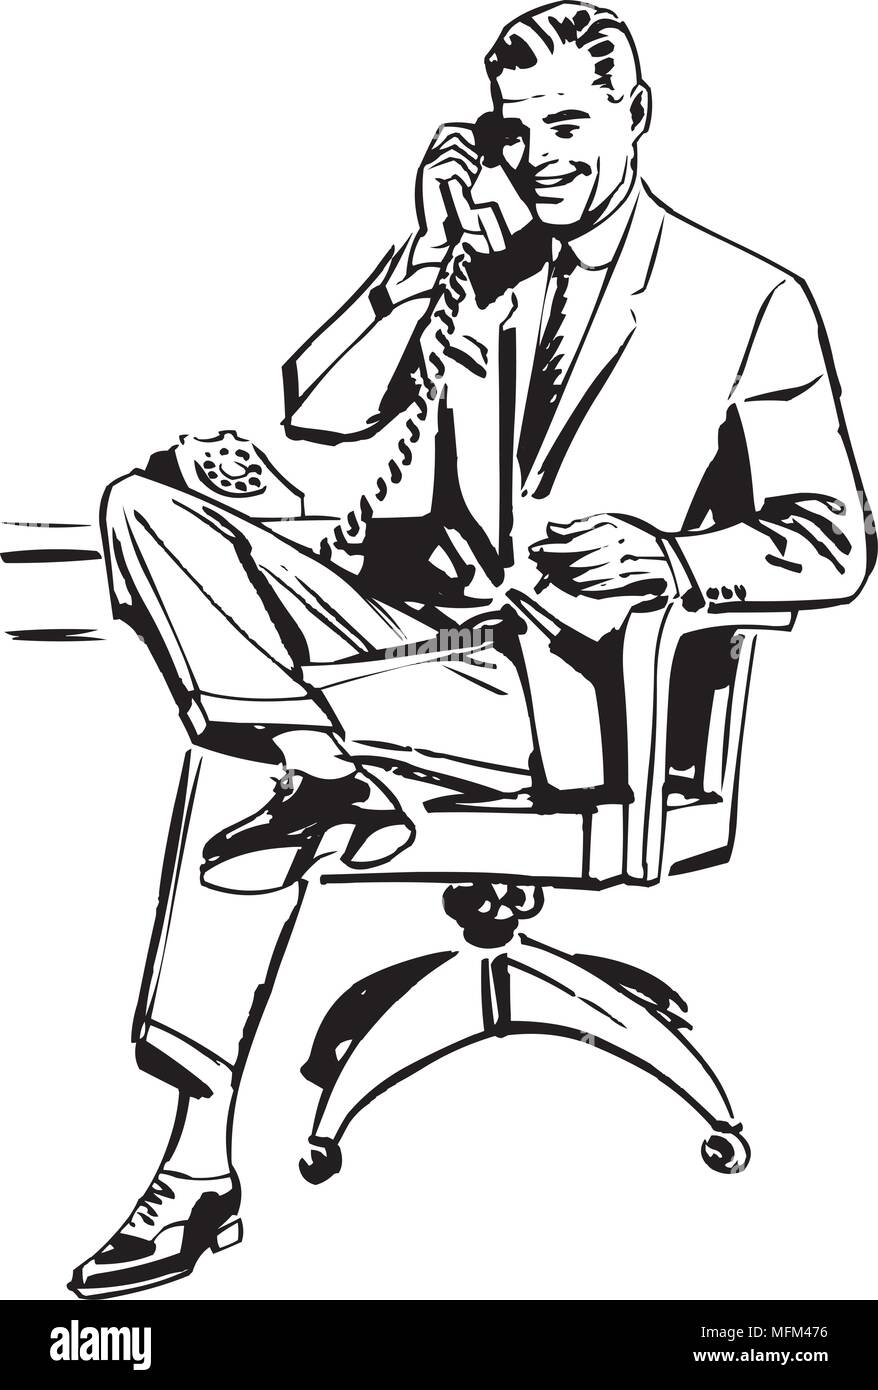 Man In Office Chair - Retro Clipart Illustration - Stock Image